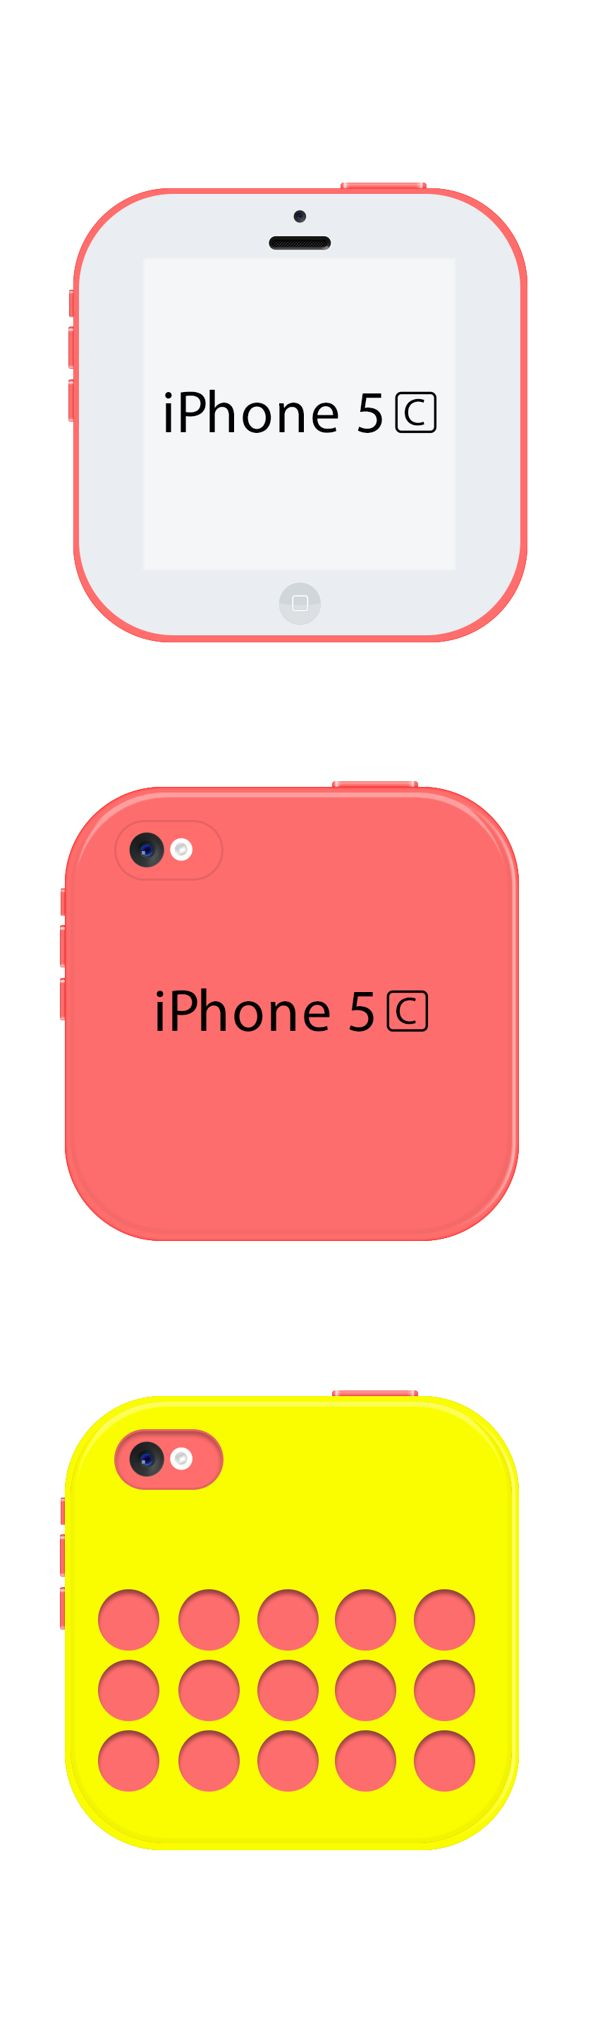 7 Search Icon IPhone 5C Images